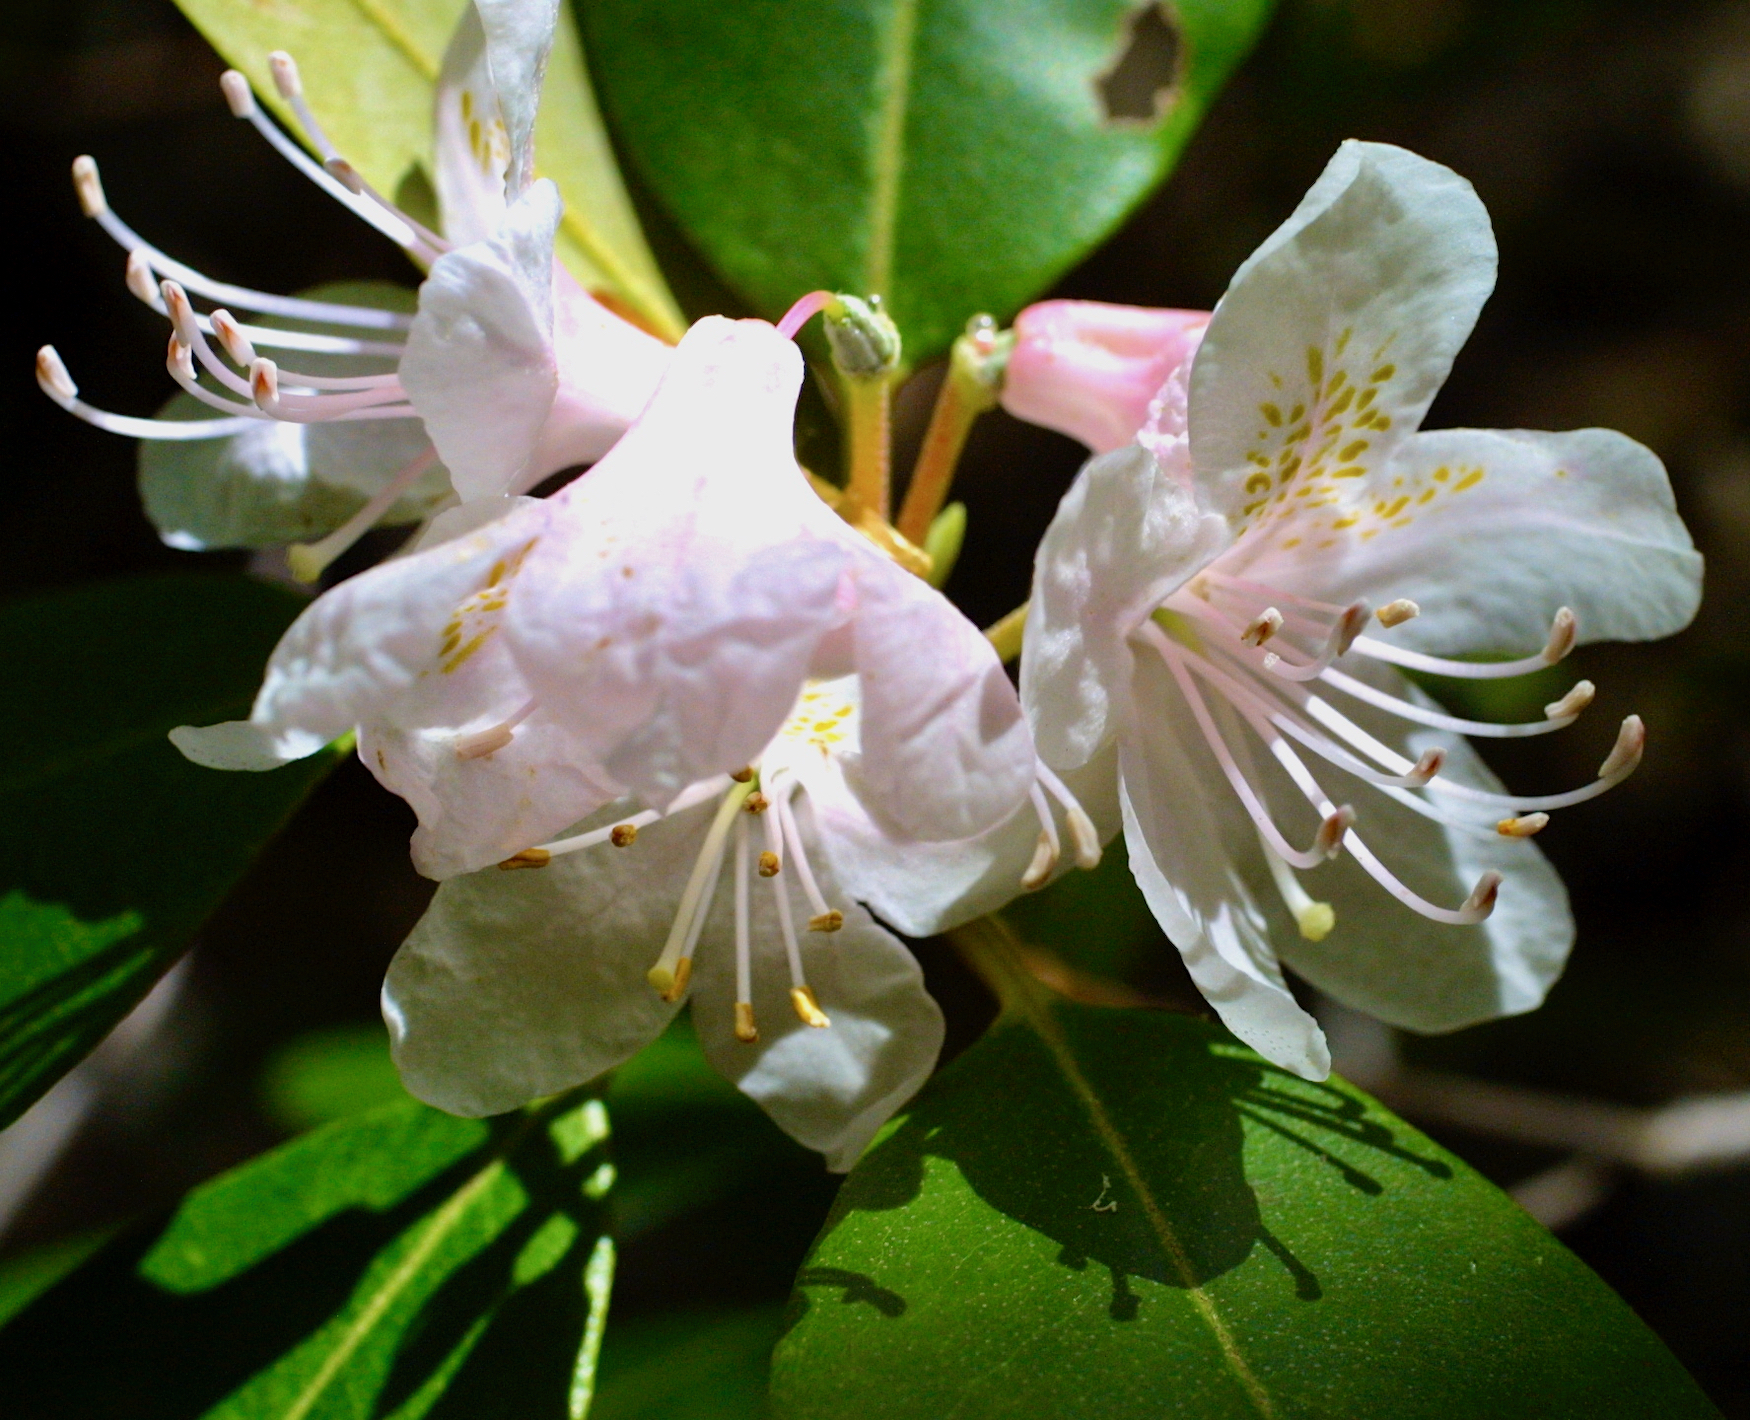 The Scientific Name is Rhododendron carolinianum. You will likely hear them called Carolina Rhododendron, Punctatum. This picture shows the Blooms earlier than Piedmont Rhododendron (R. minus), and has smaller flowers than Rosebay Rhododendron (R. maximum). of Rhododendron carolinianum